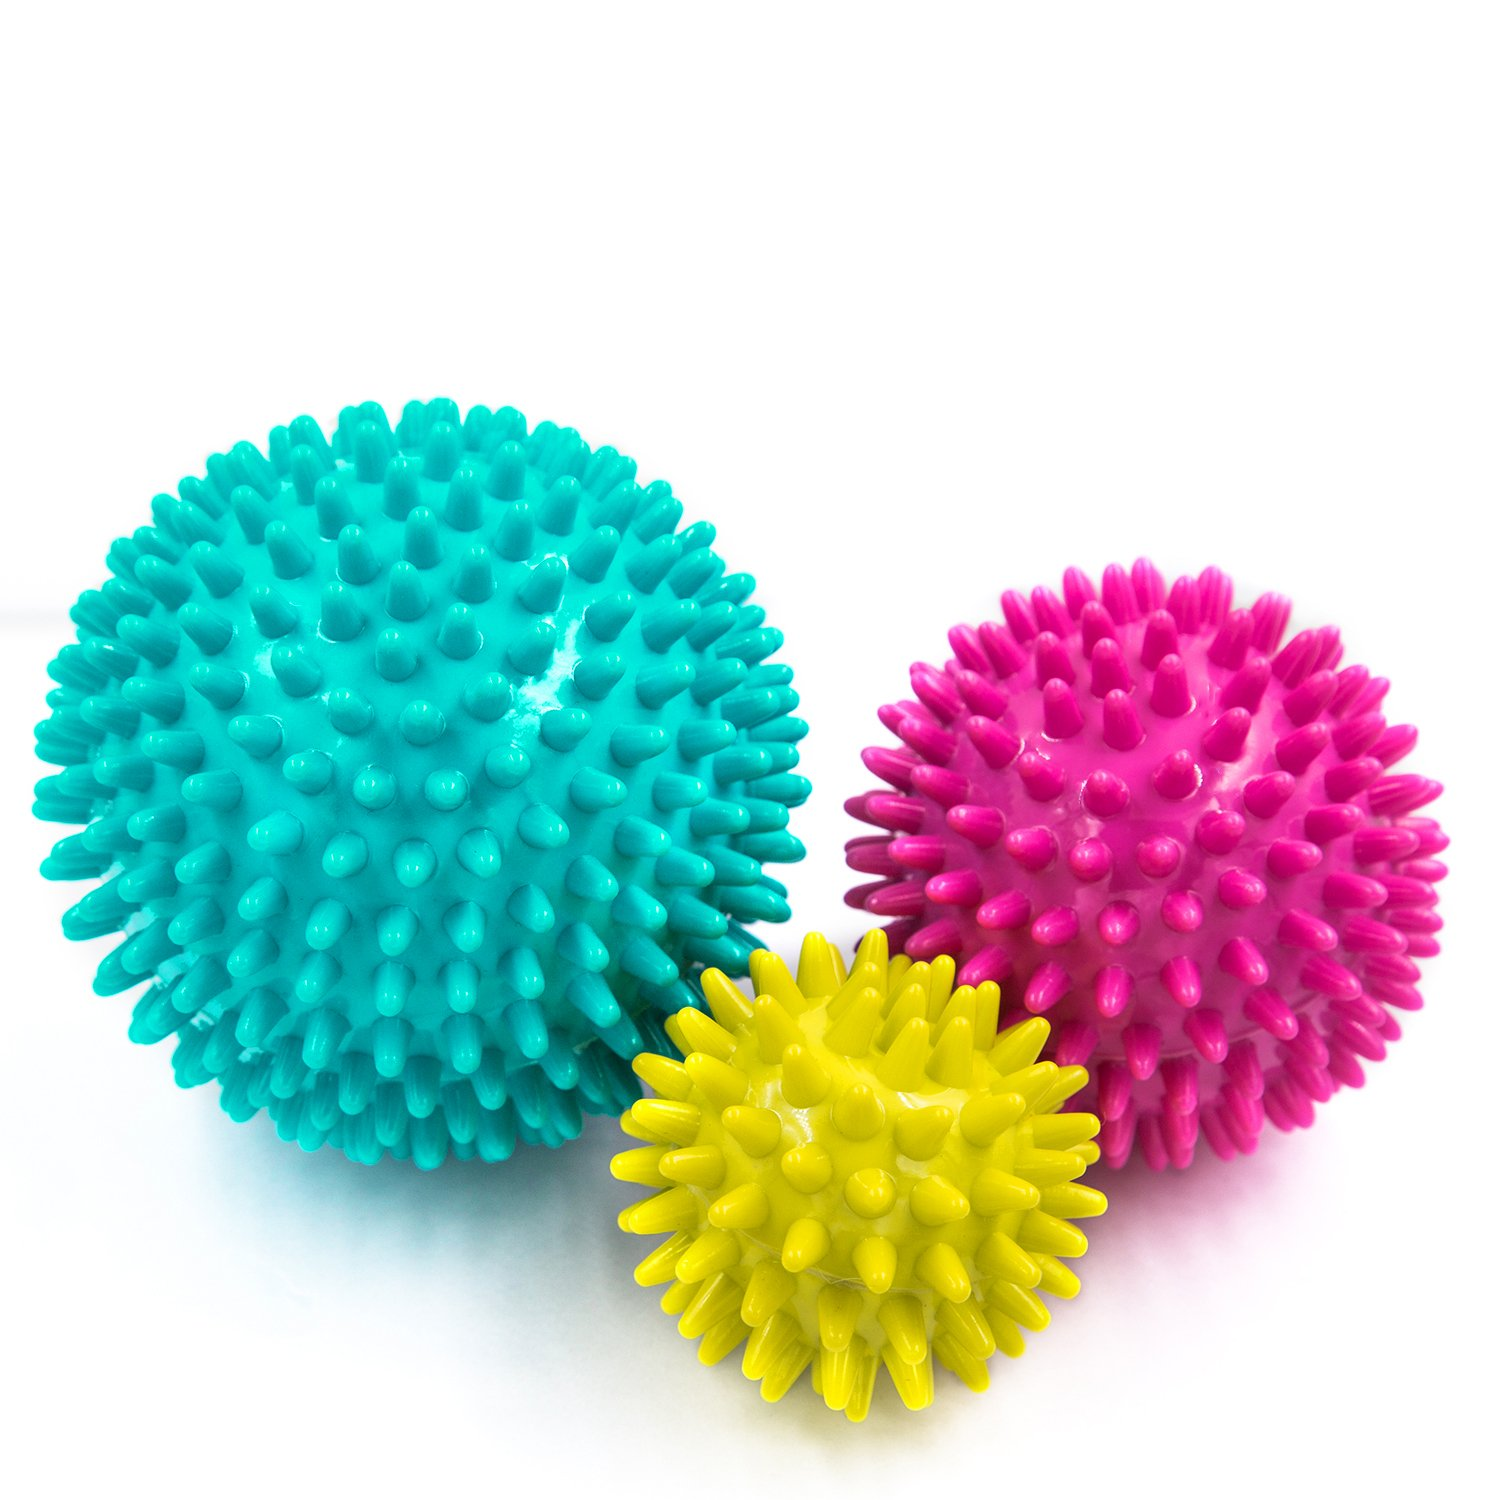 3 Pack Spiky Massage Balls Set, Release Plantar Fasciitis Pain Relief, Foot/ Back/Neck/Hand Tissue Massage and Yoga Massager Tools, Improve Reflexology Myofascial Release, Physical Therapy Fascia